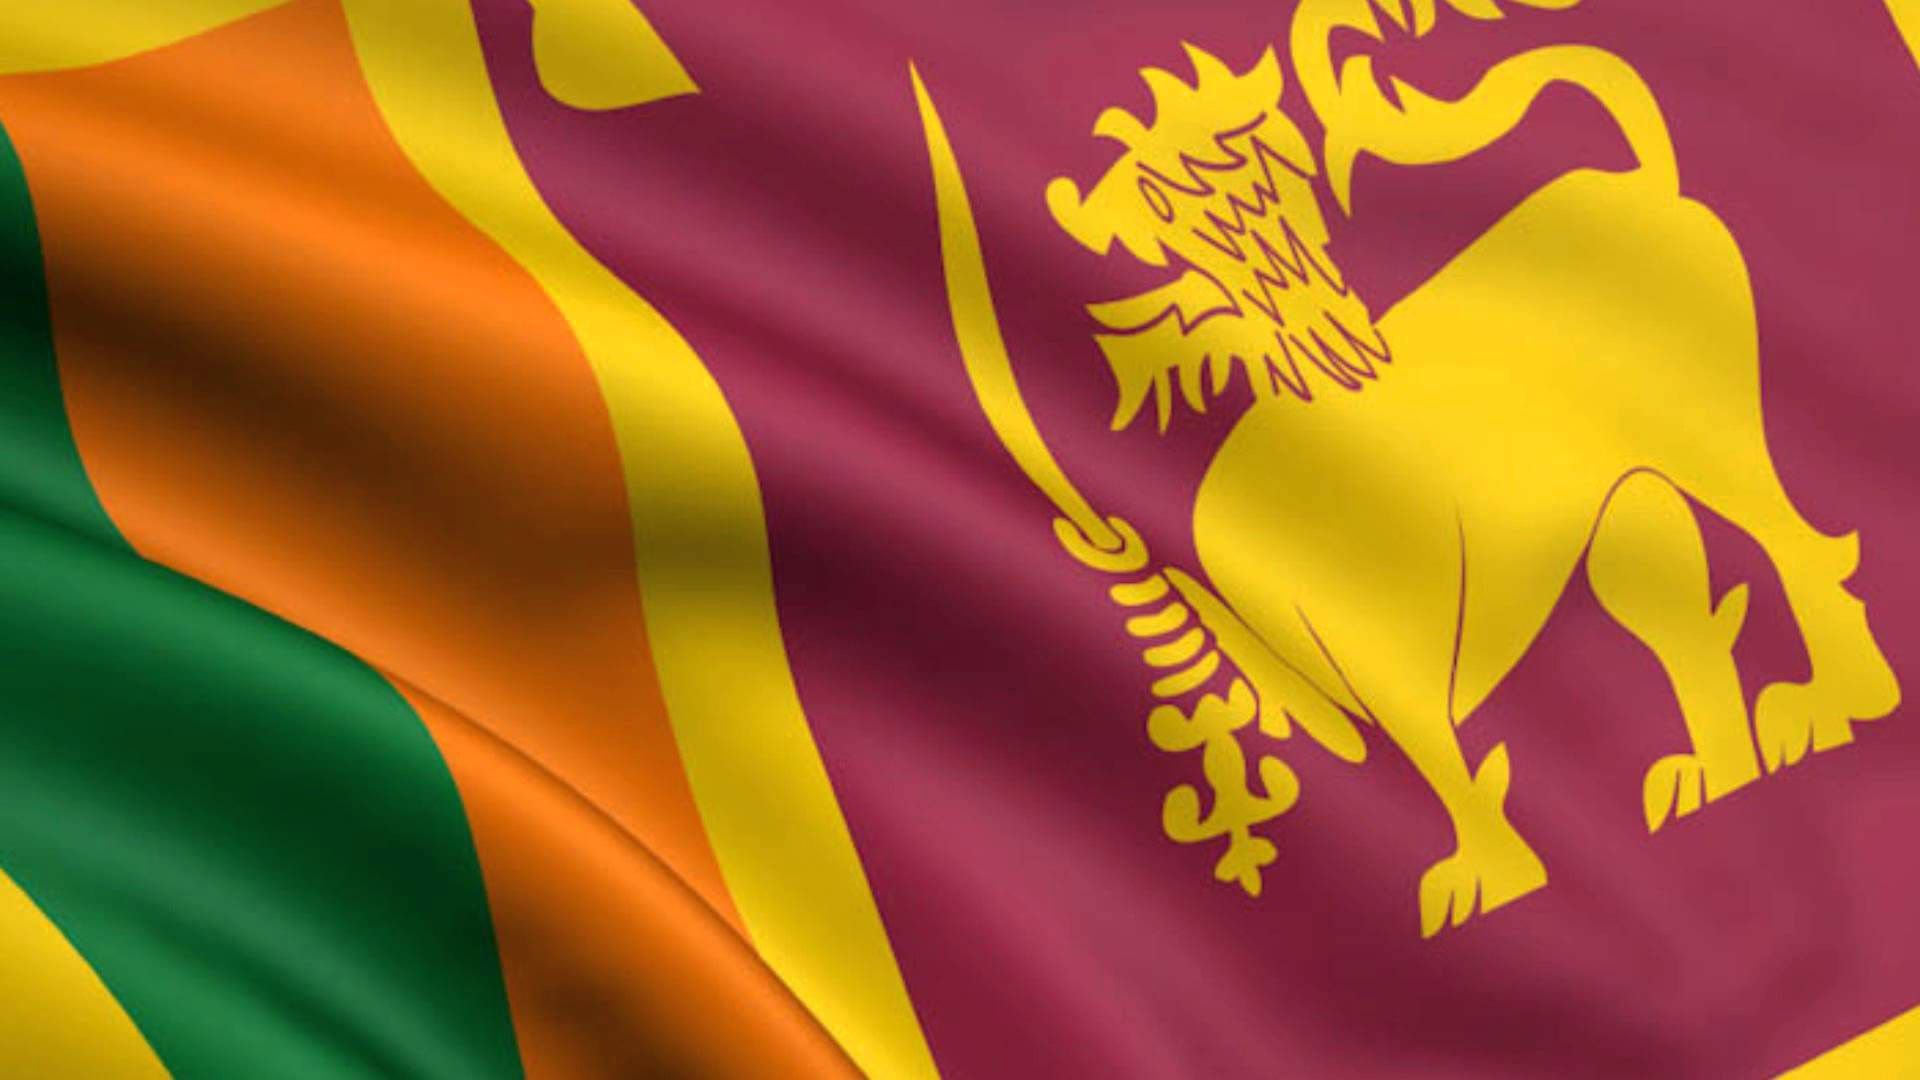 Sri Lanka Flag Wallpaper | Sri lanka flag, Sri lankan flag, Flag